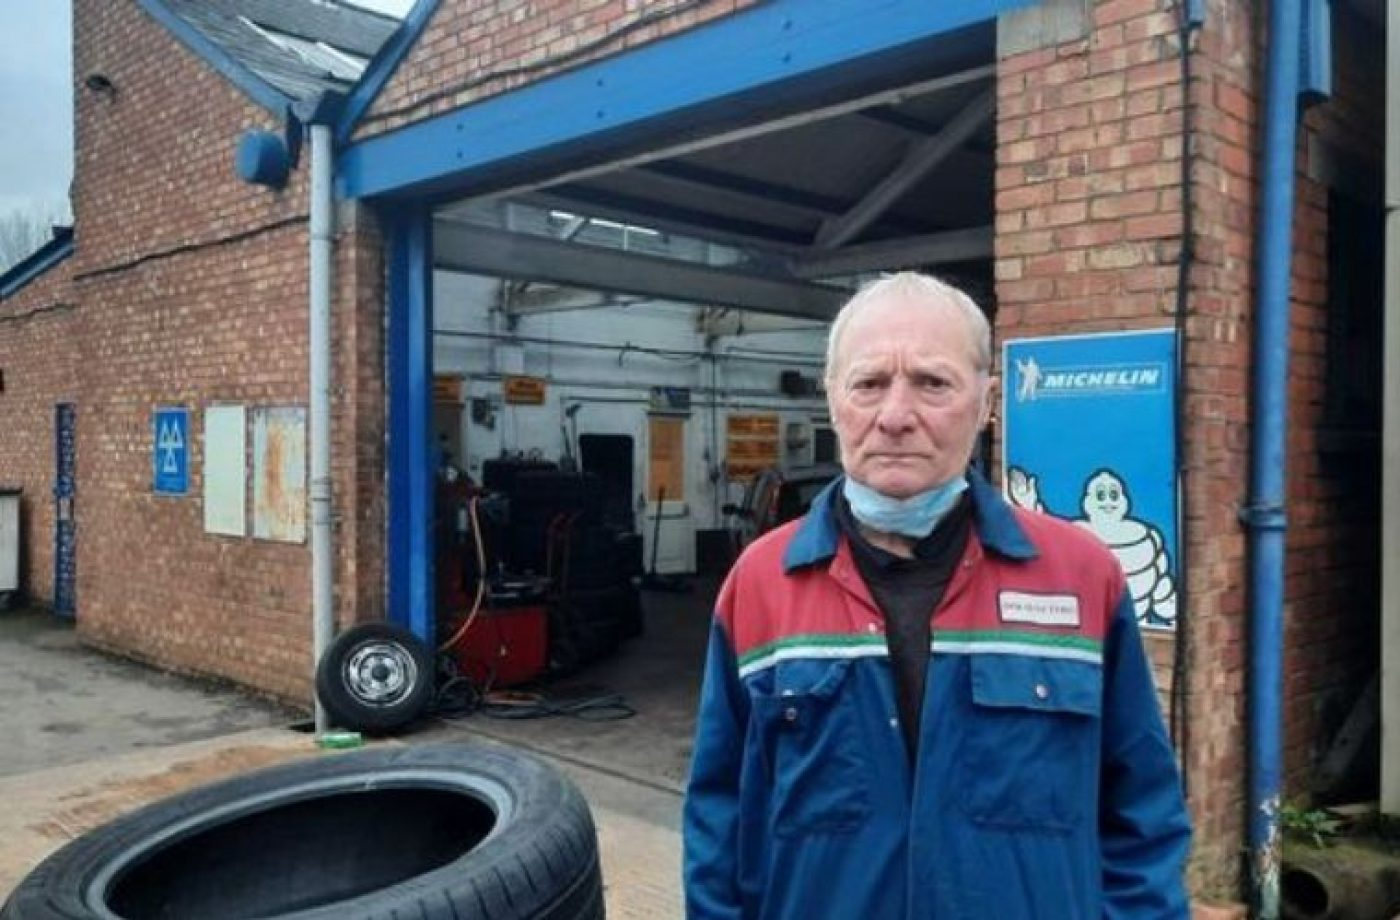 Garage to lose £12K during road closure, owner fears